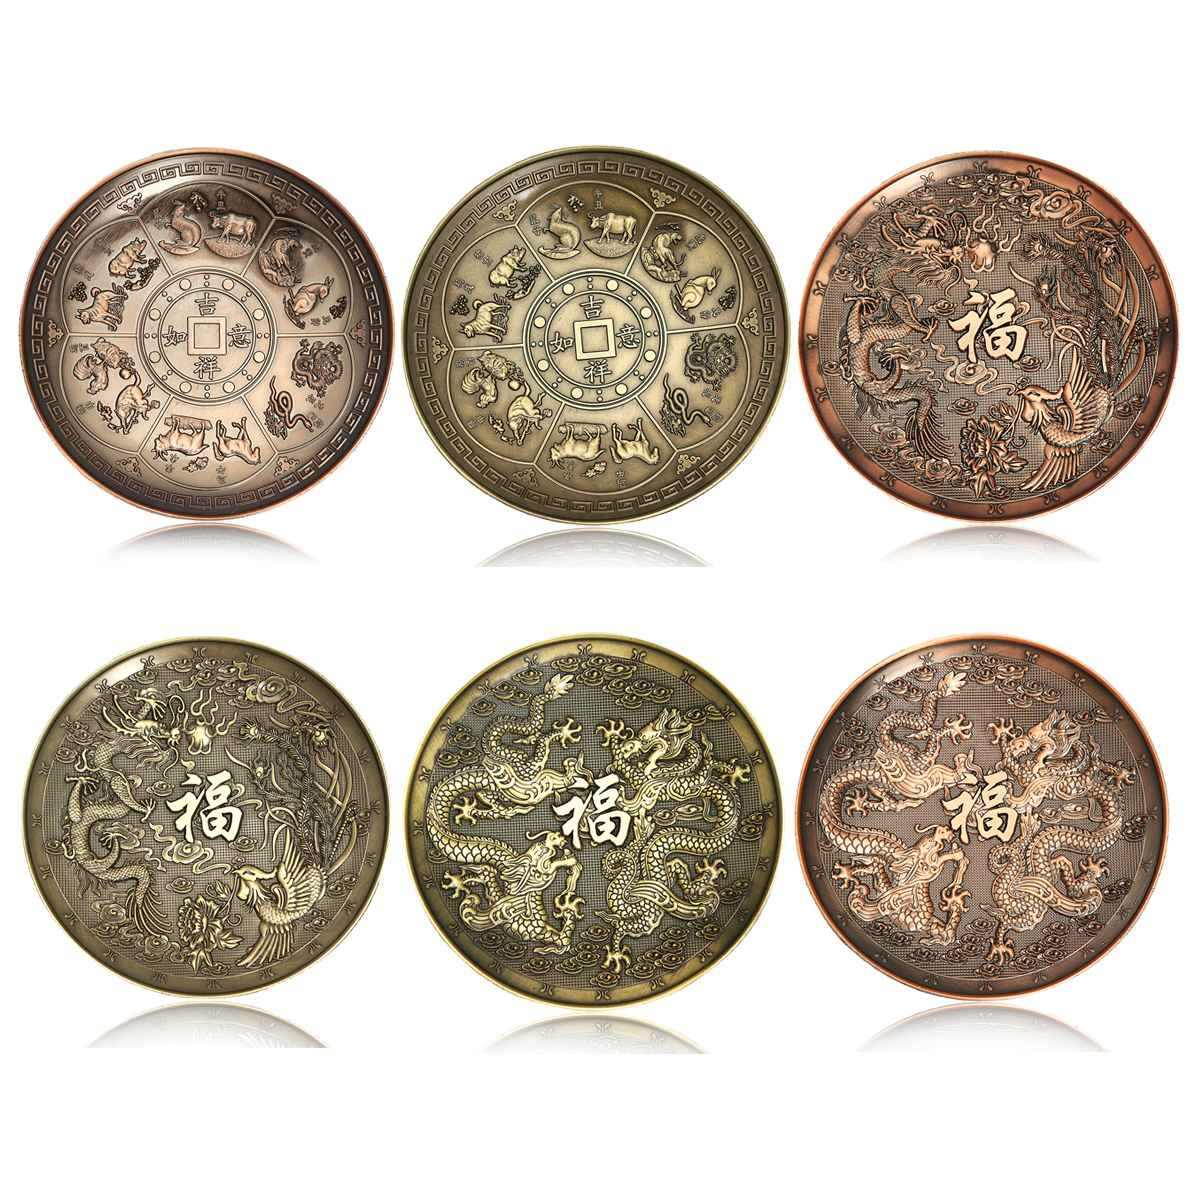 Chinese Dragon Incense Holder Retro 5 Holes Lotus Incense Burners Stick Cone Censer Plate Buddhism Home Office Decoration Crafts